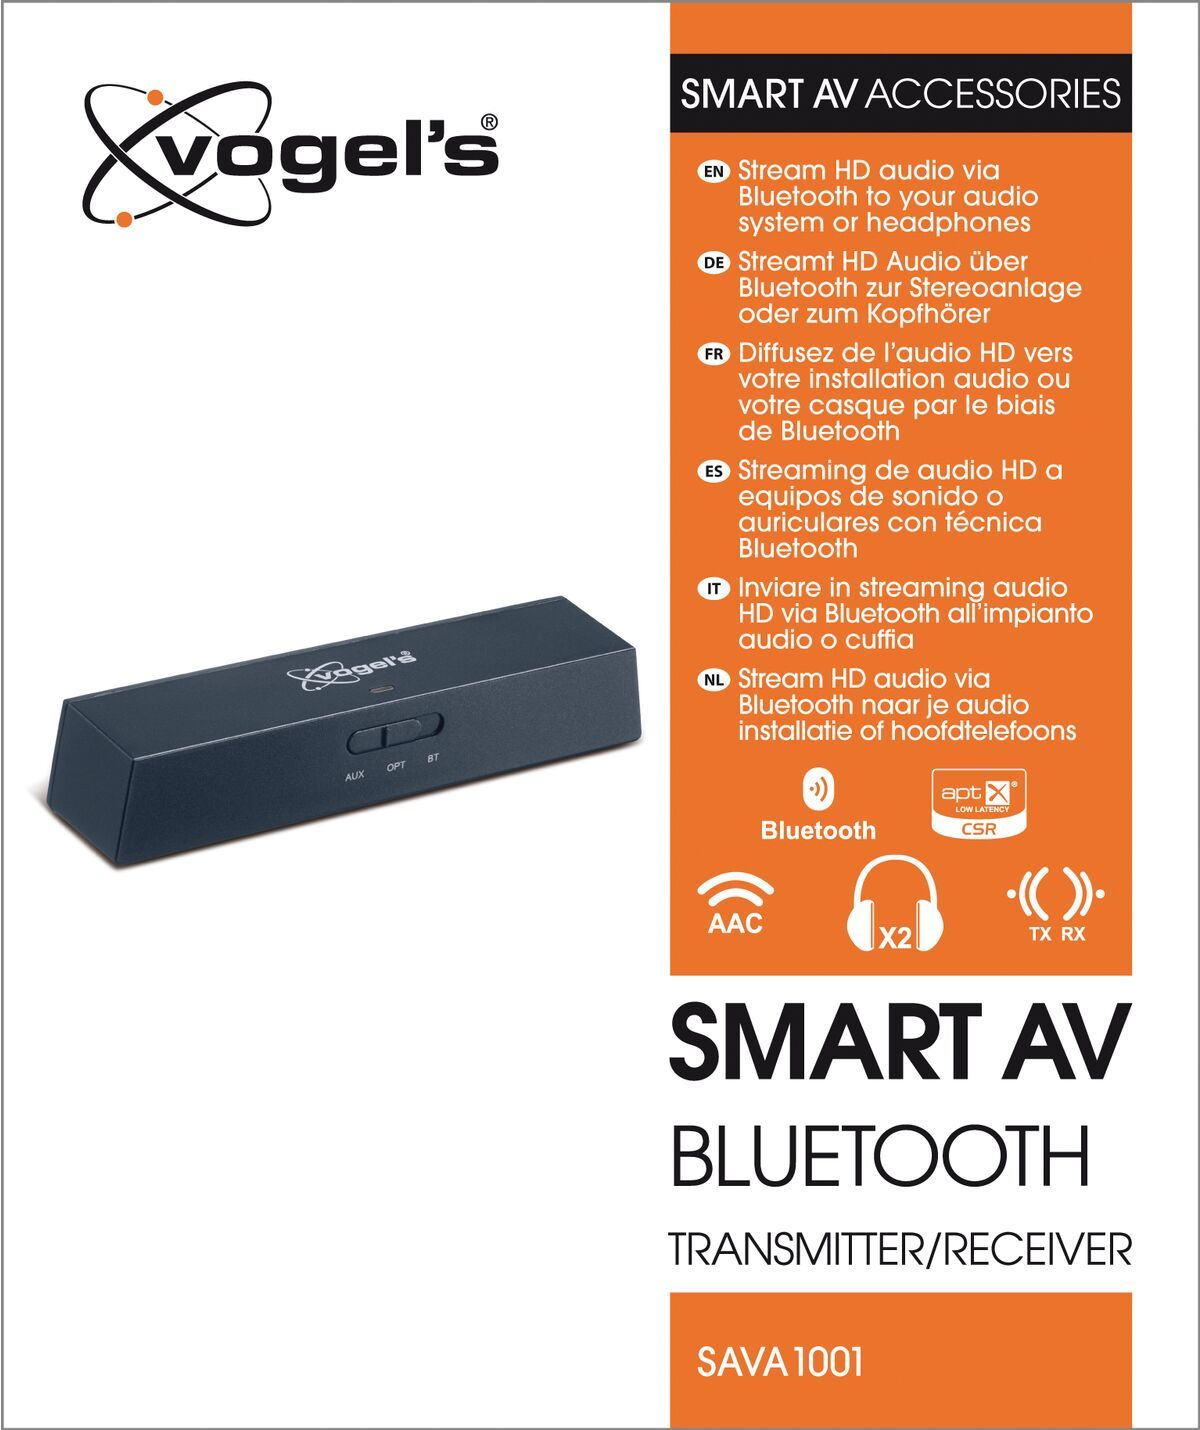 Vogel's SAVA 1001 Smart AV Bluetooth transmitter/receiver - Packaging front